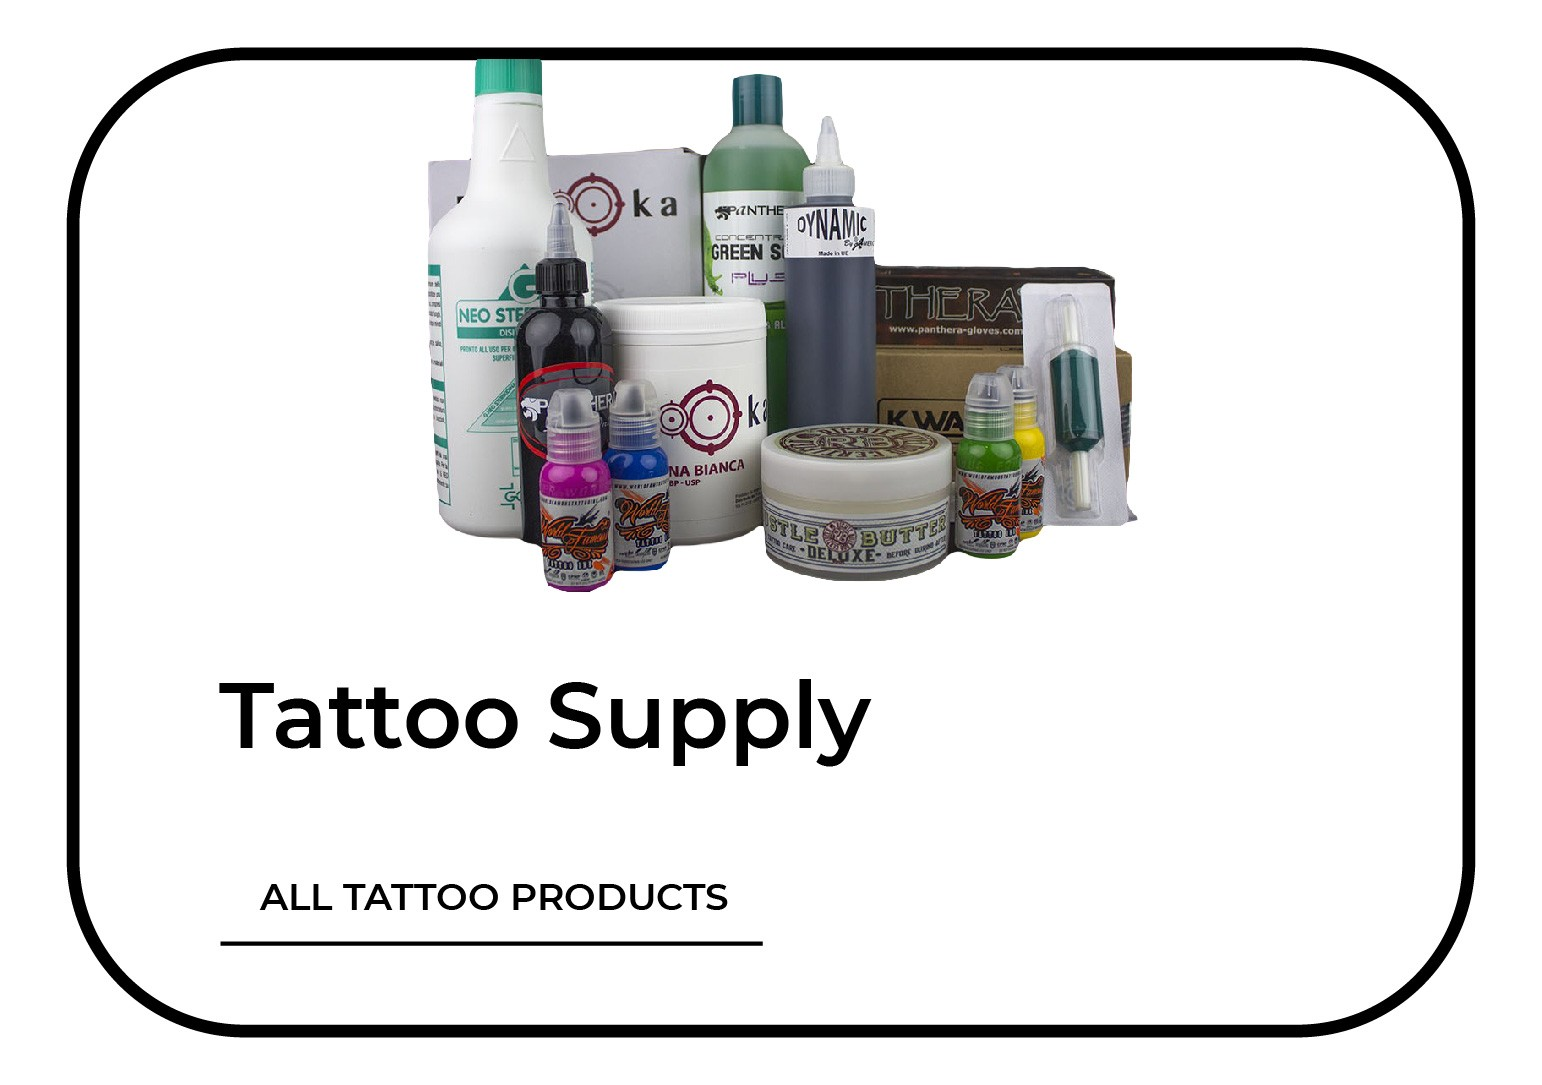 Tattoo Supply